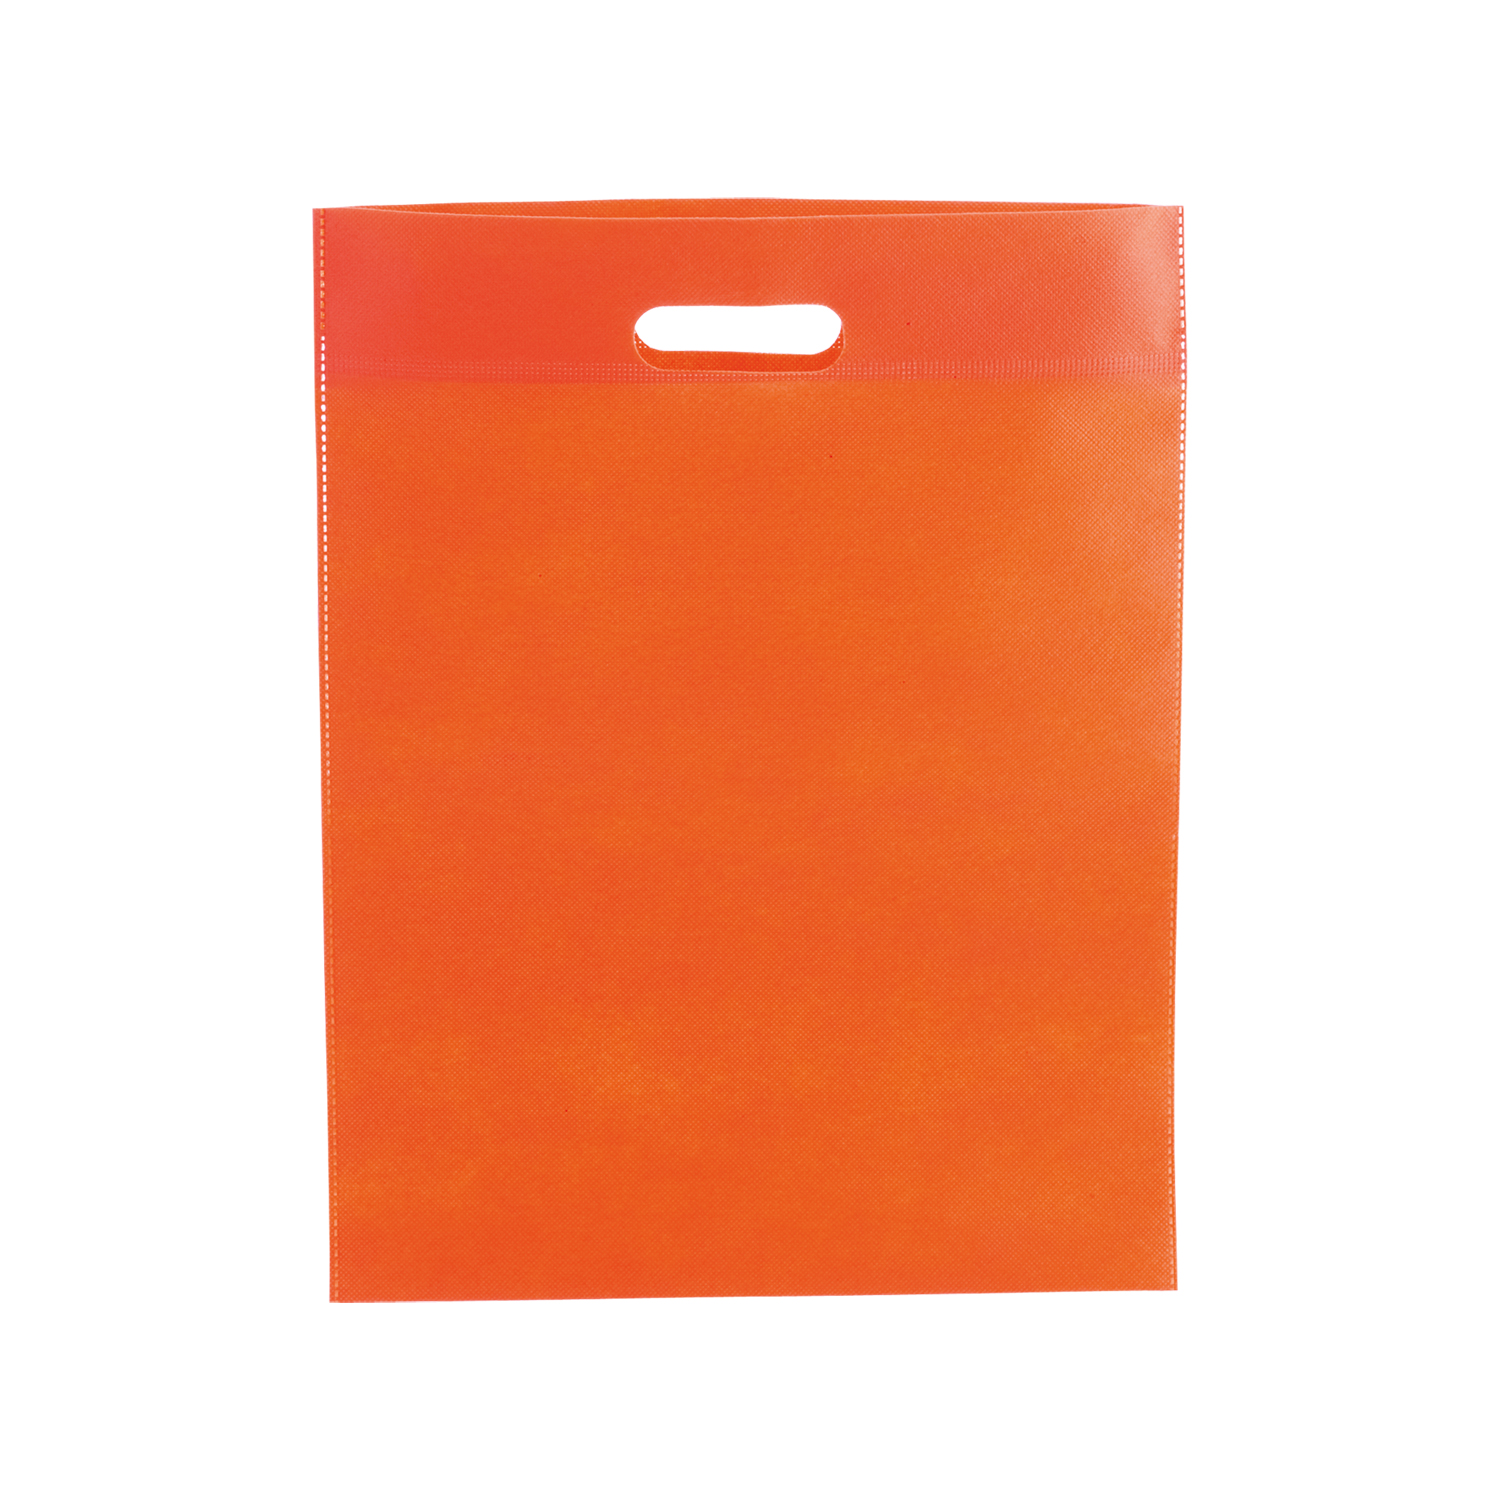 Shopping Bag 022 (Non-woven shopping bag) - hmi17022-11 (Orange)